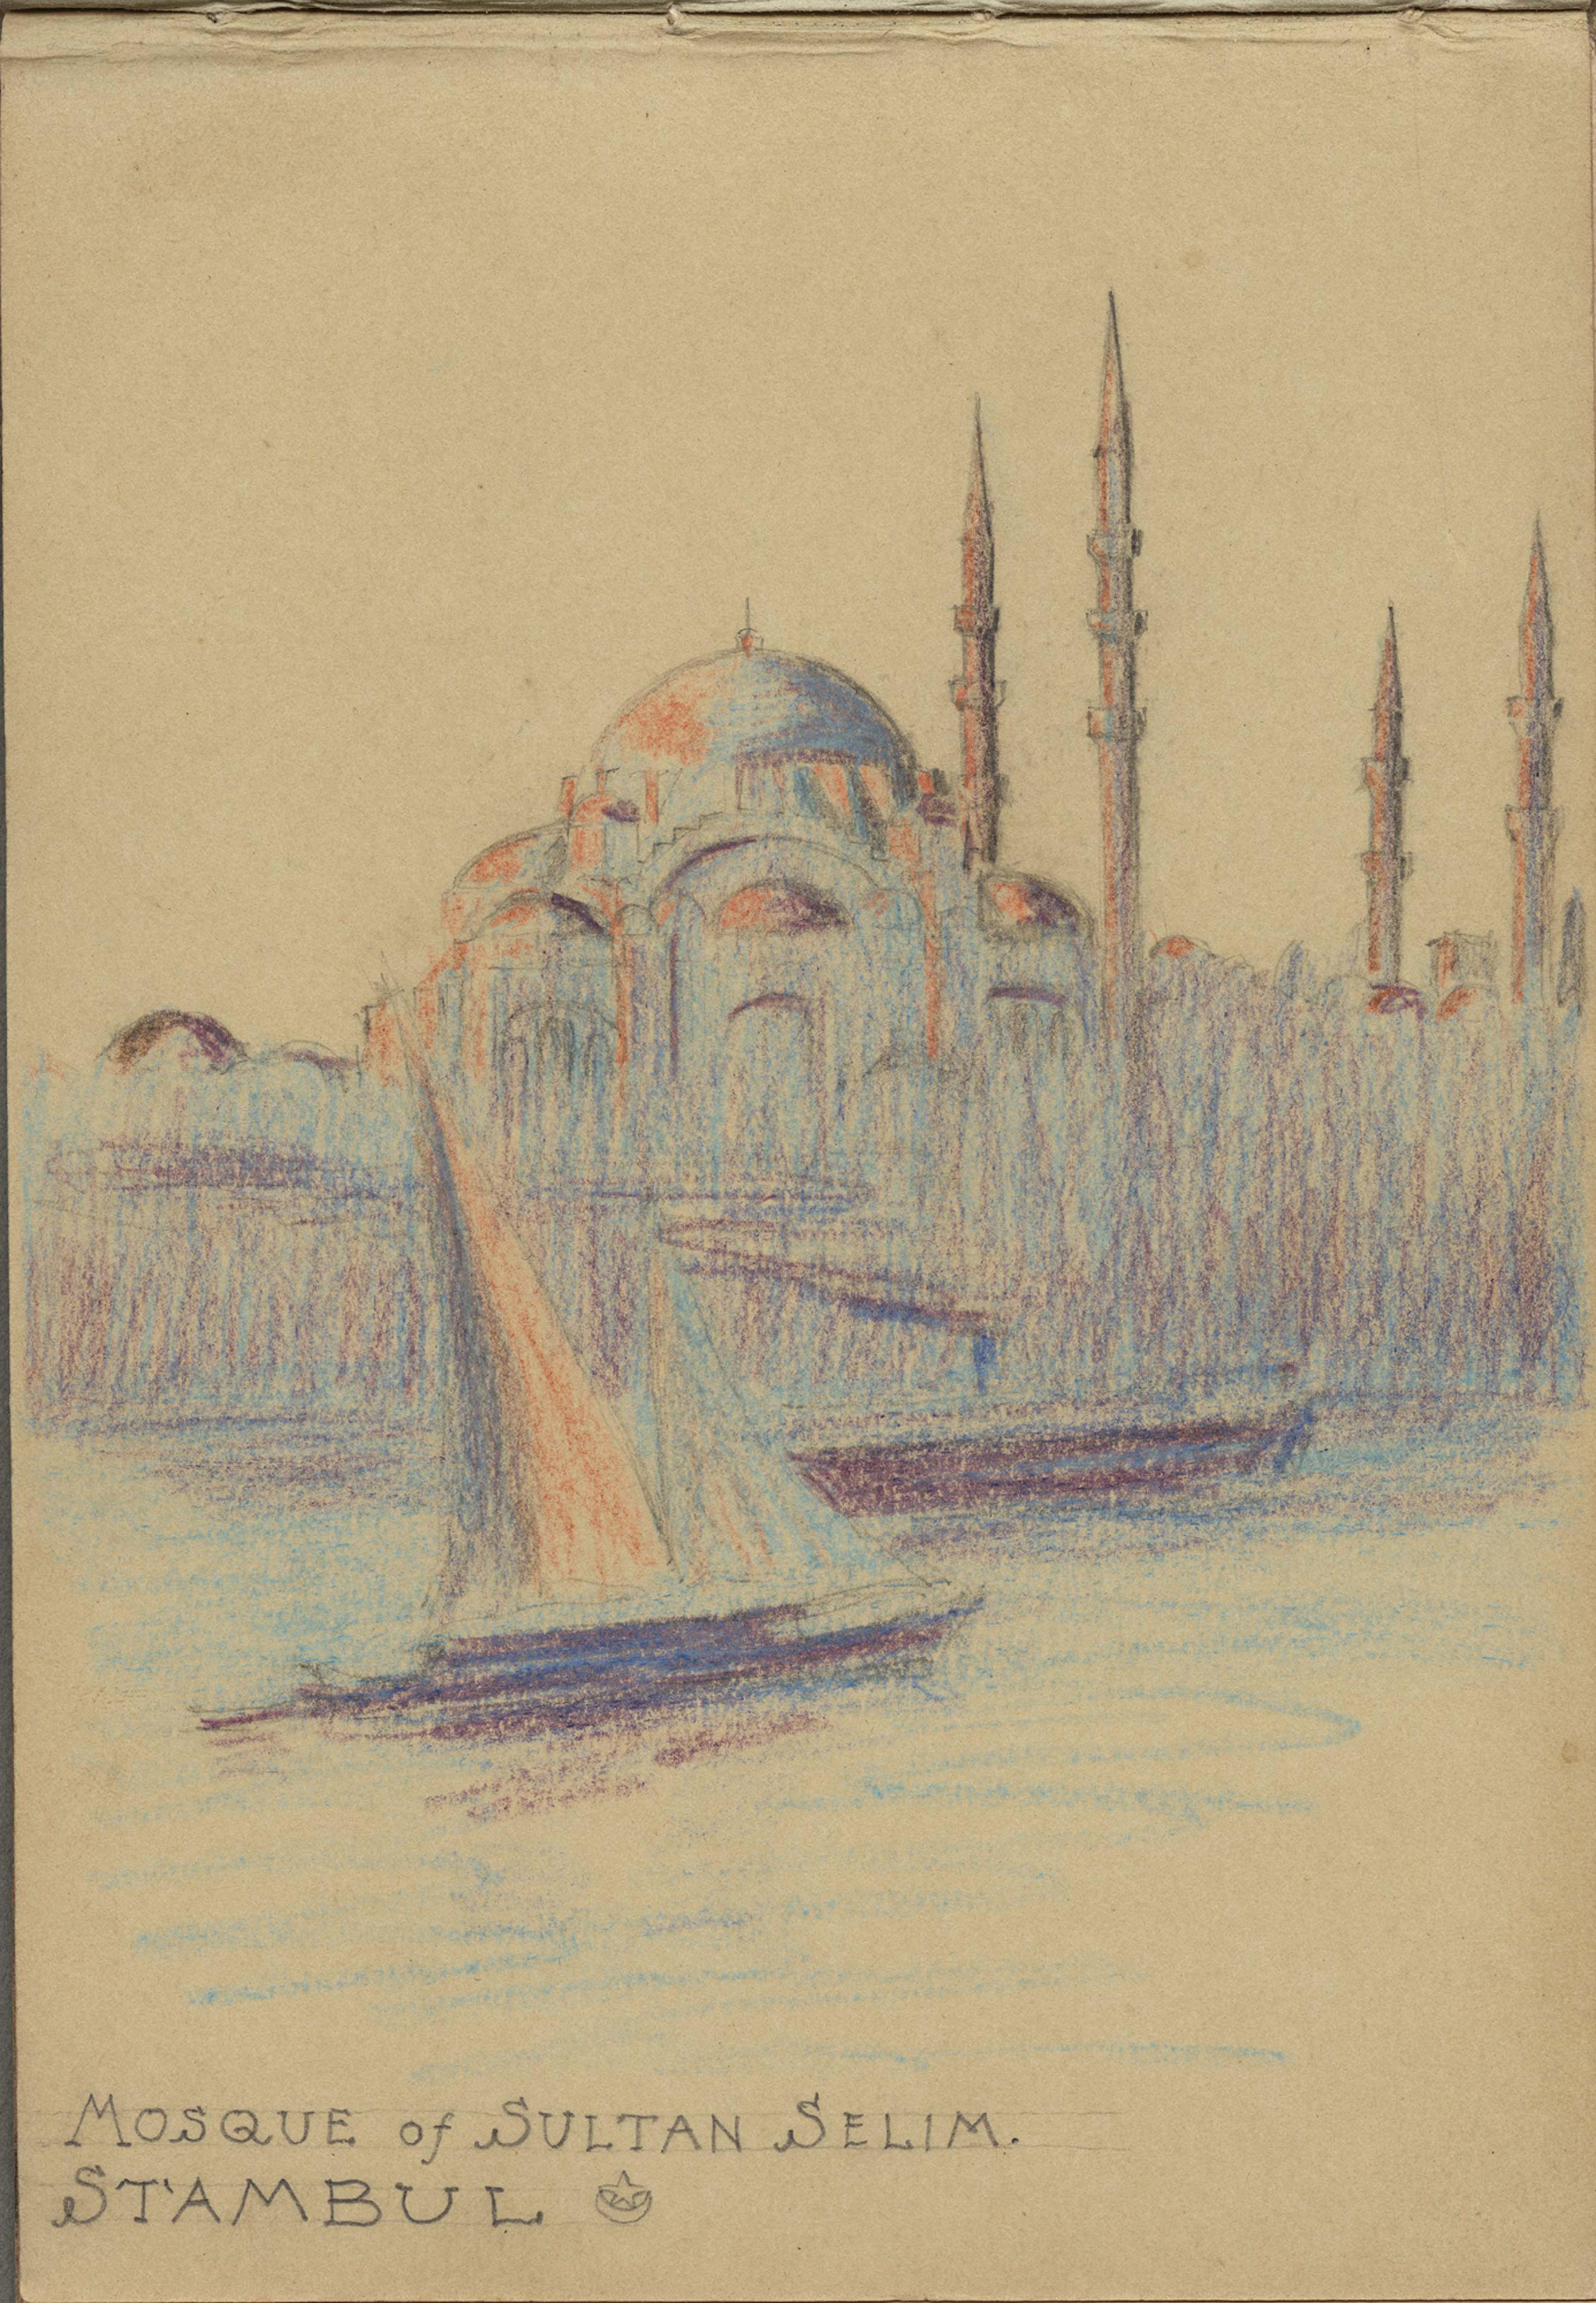 Albert Simons Sketchbook, 1912-1916